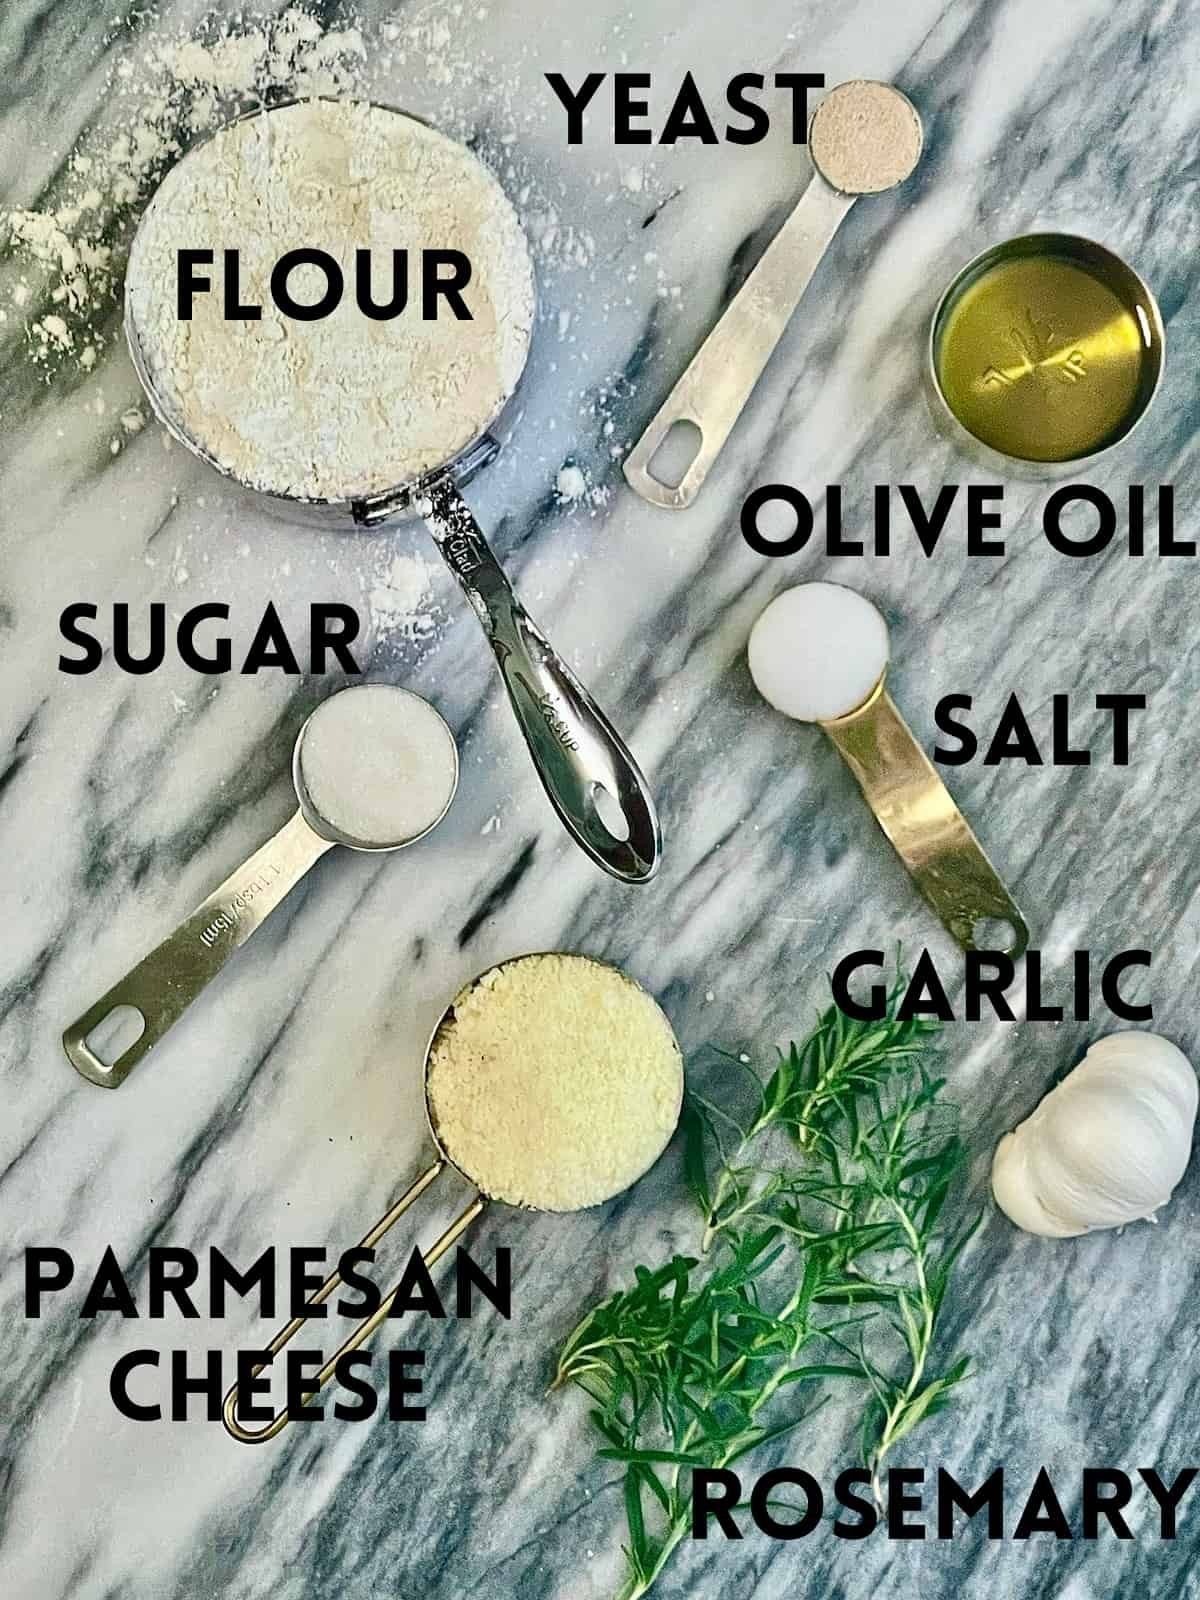 flour, sugar, oil, salt, yeast, rosemary, garlic, and cheese laid out on a cutting board